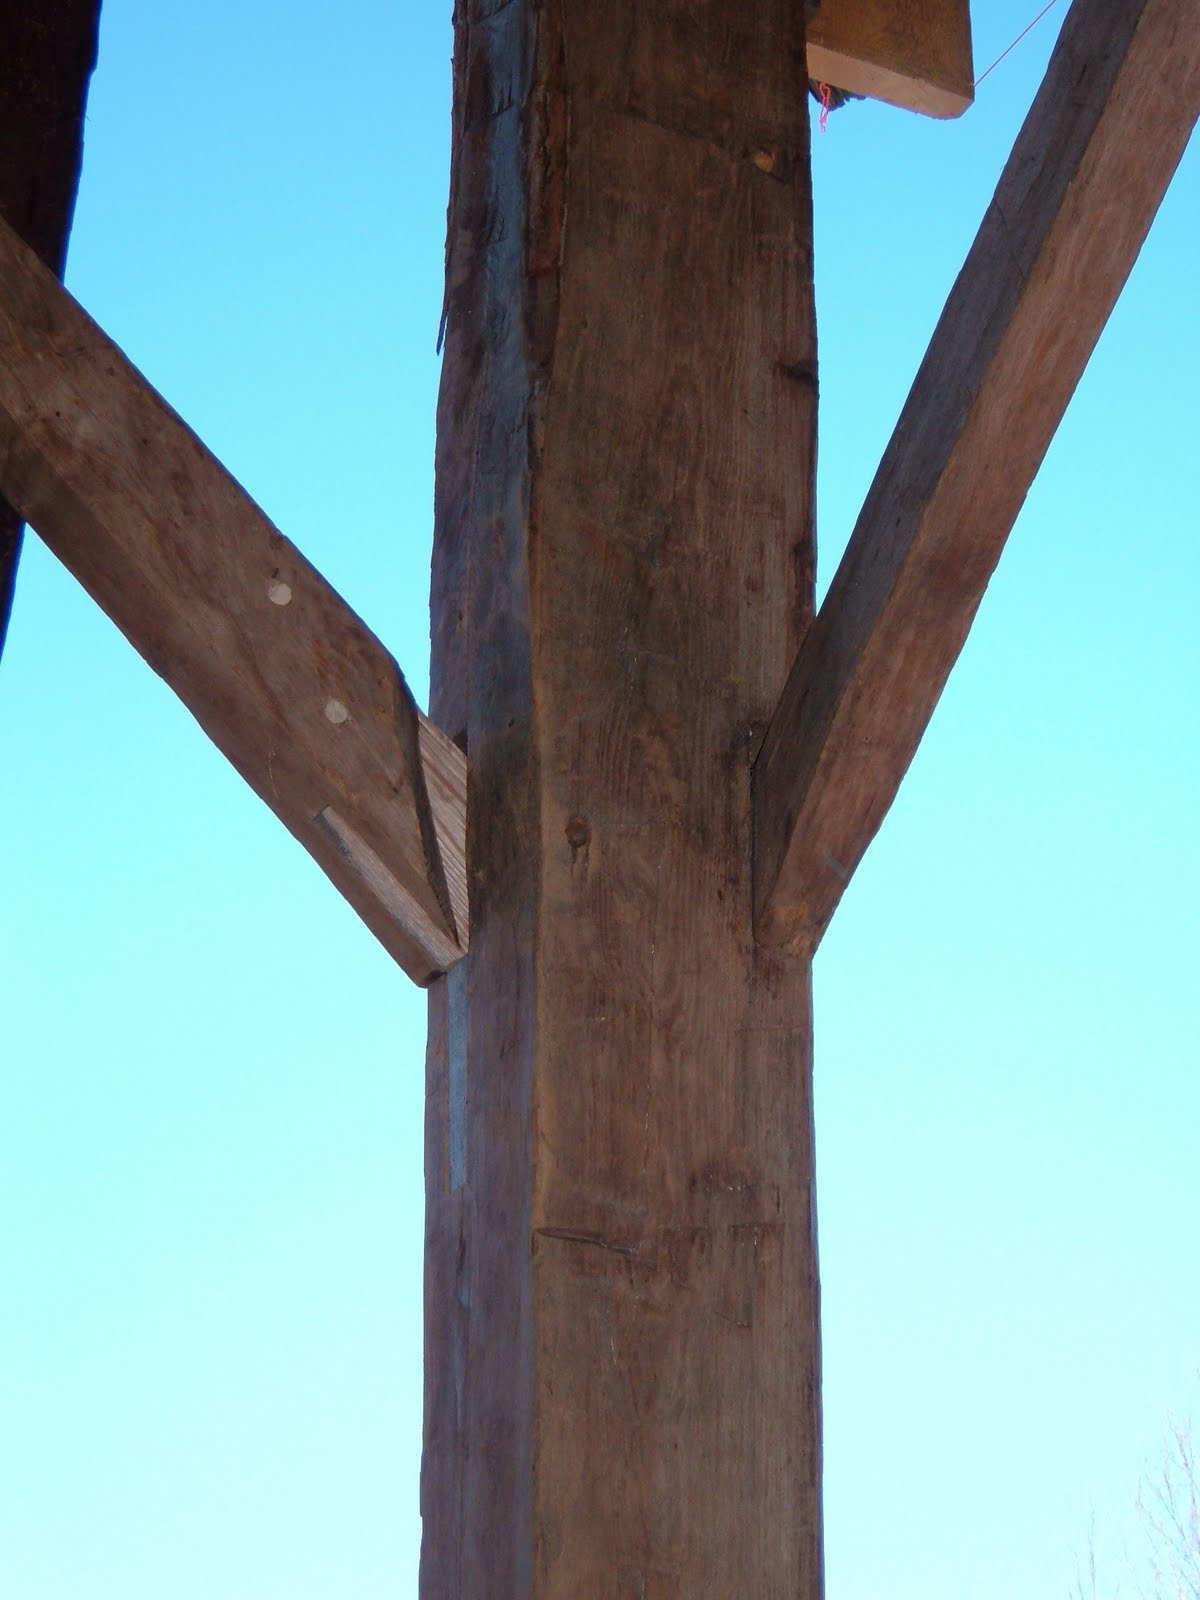 The hewn braces in this scribe ruled barn were mostly oak.  Shown here is a brace repaired with an oak free tenon.